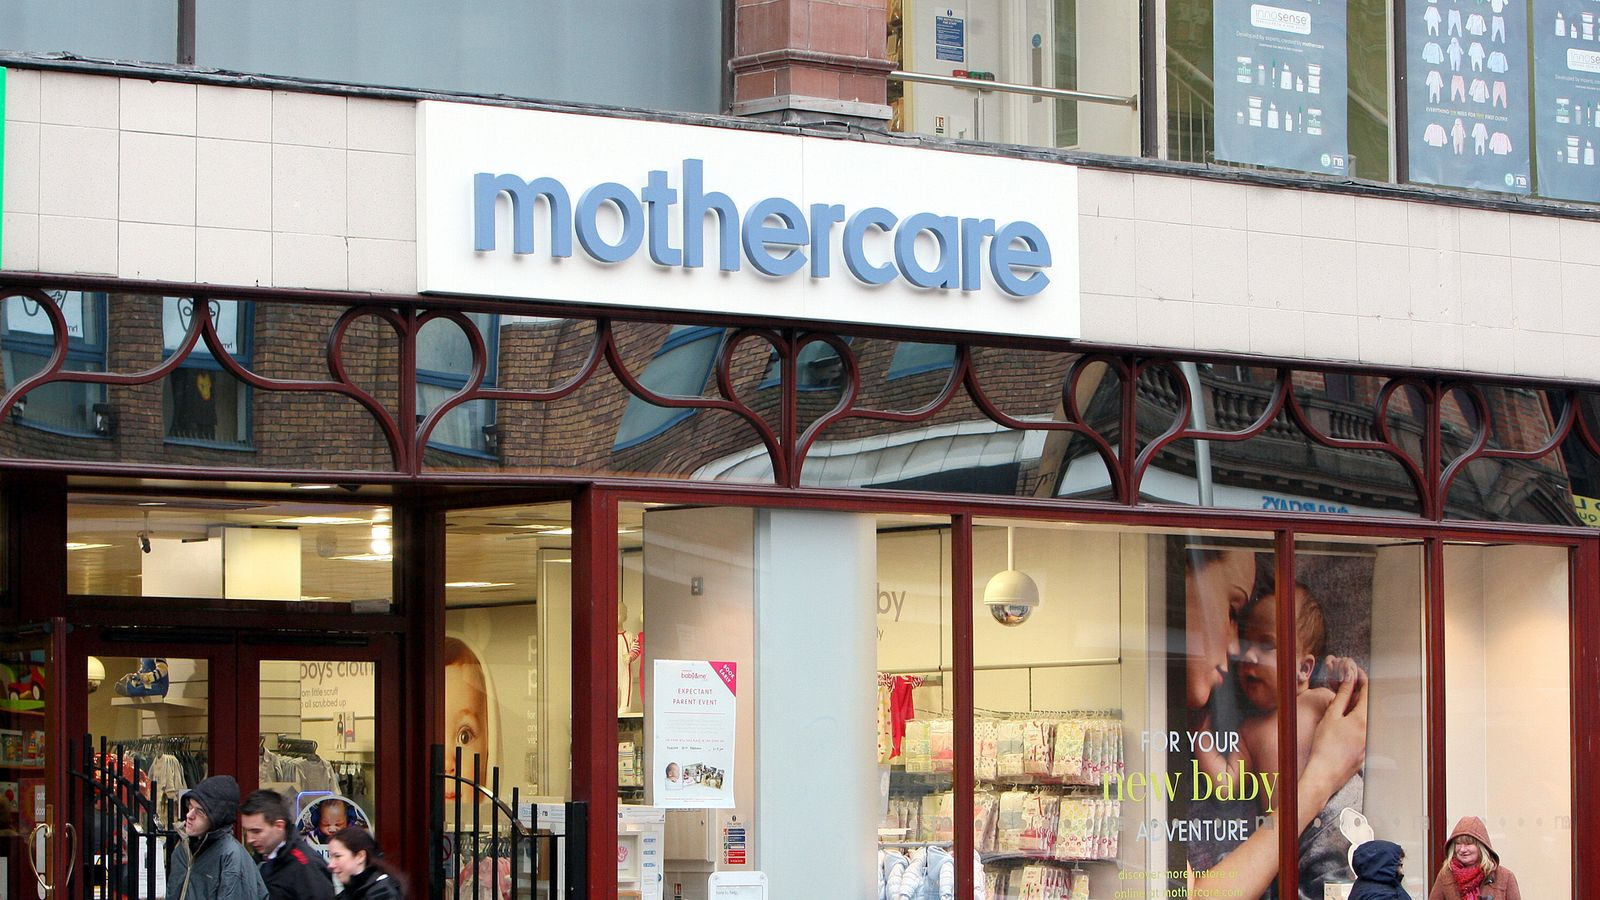 900 jobs lost as Mothercare closes more stores